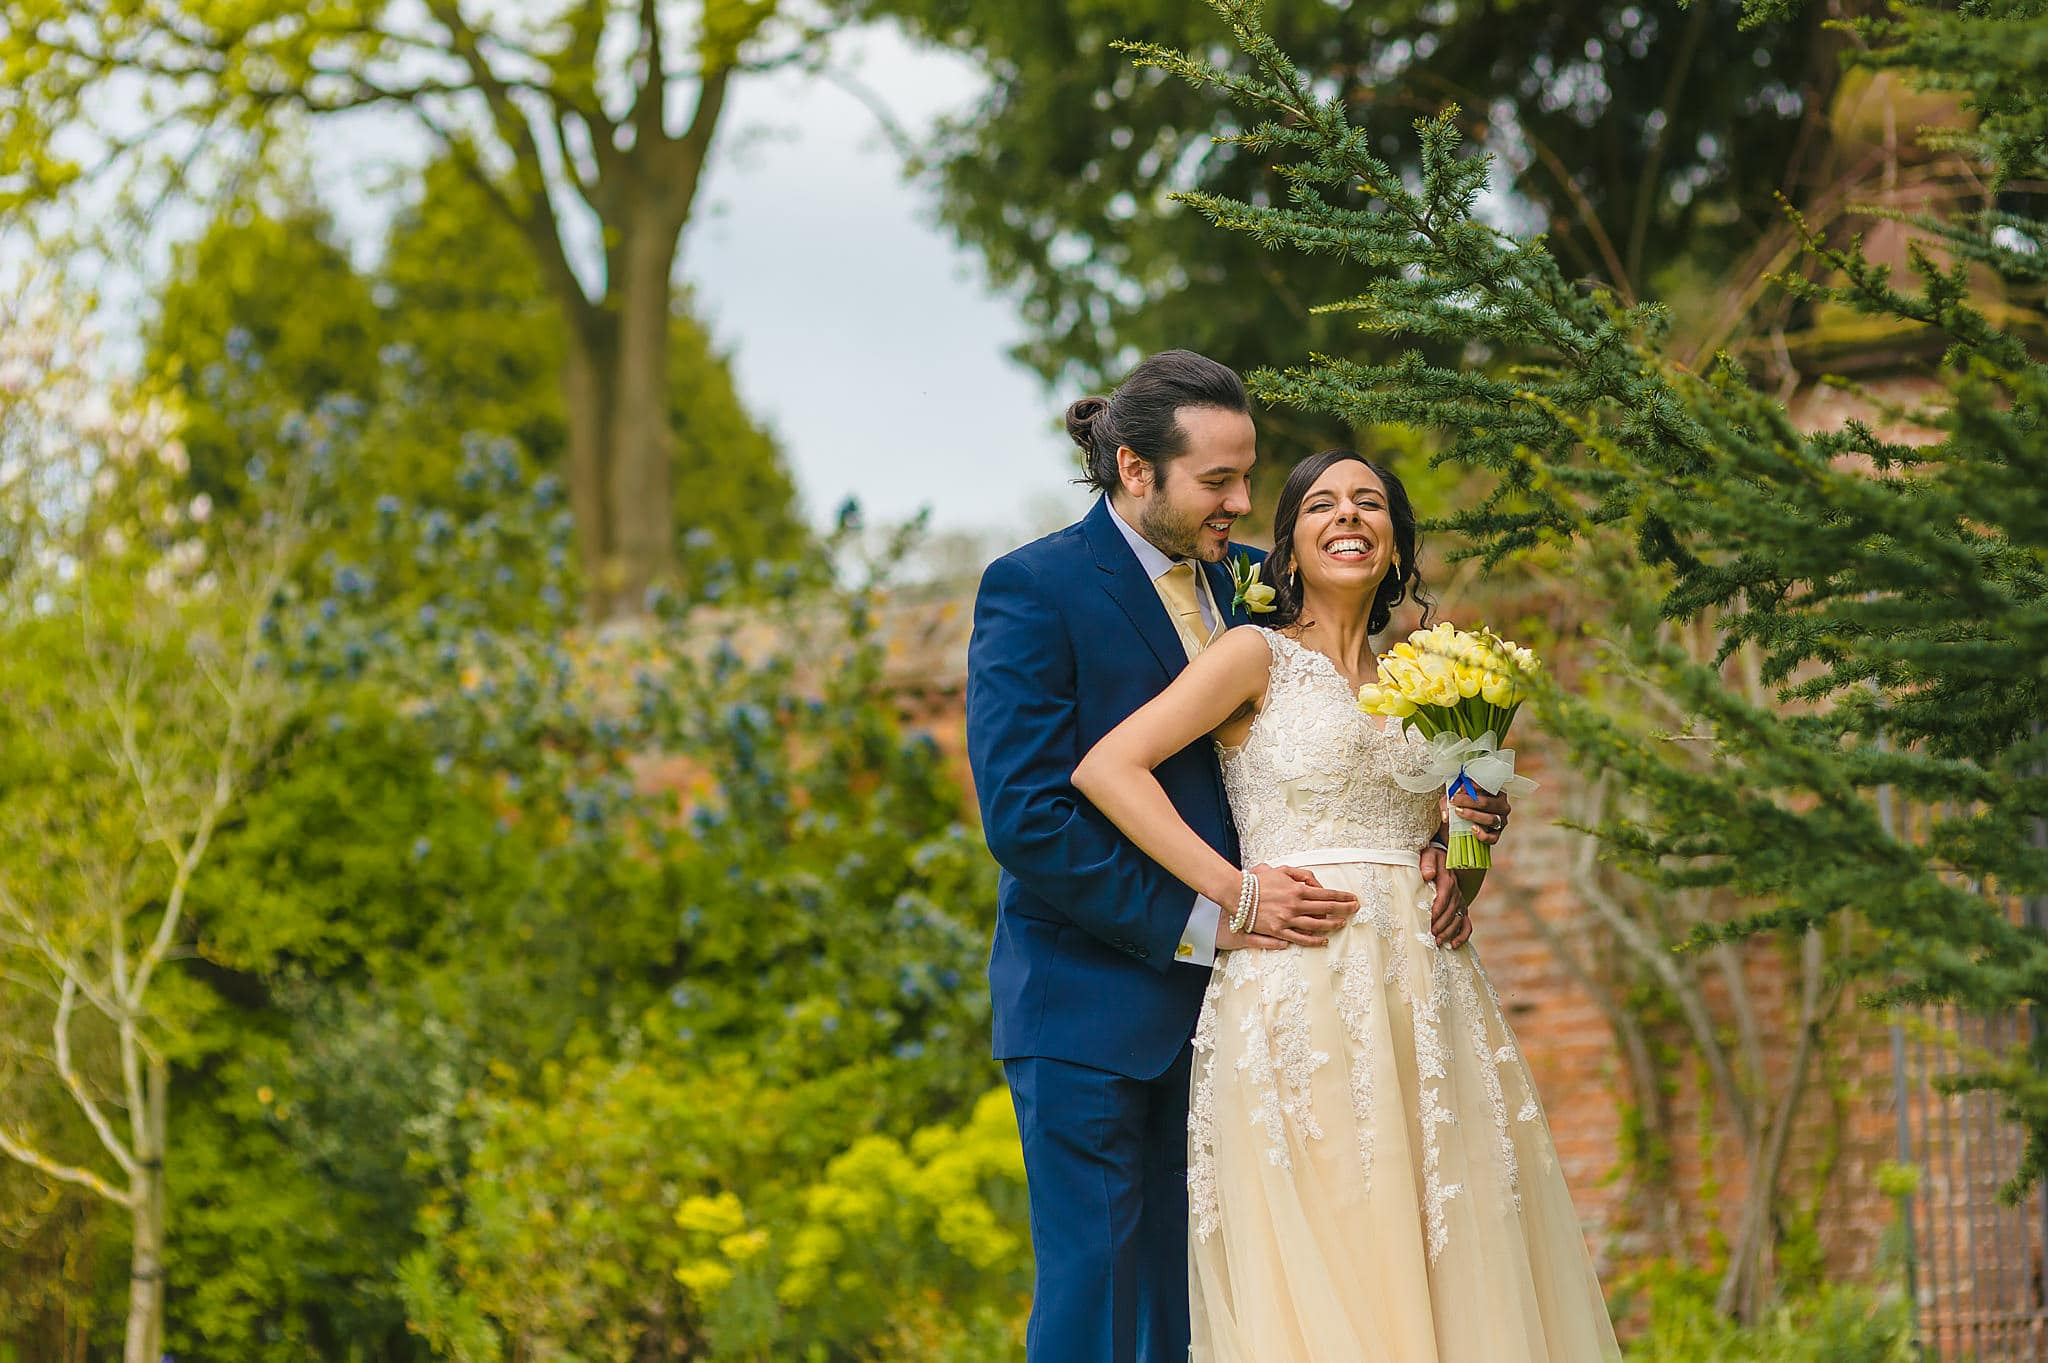 birtsmorton court wedding 92 - Sheena + Lee | Birtsmorton Court Wedding